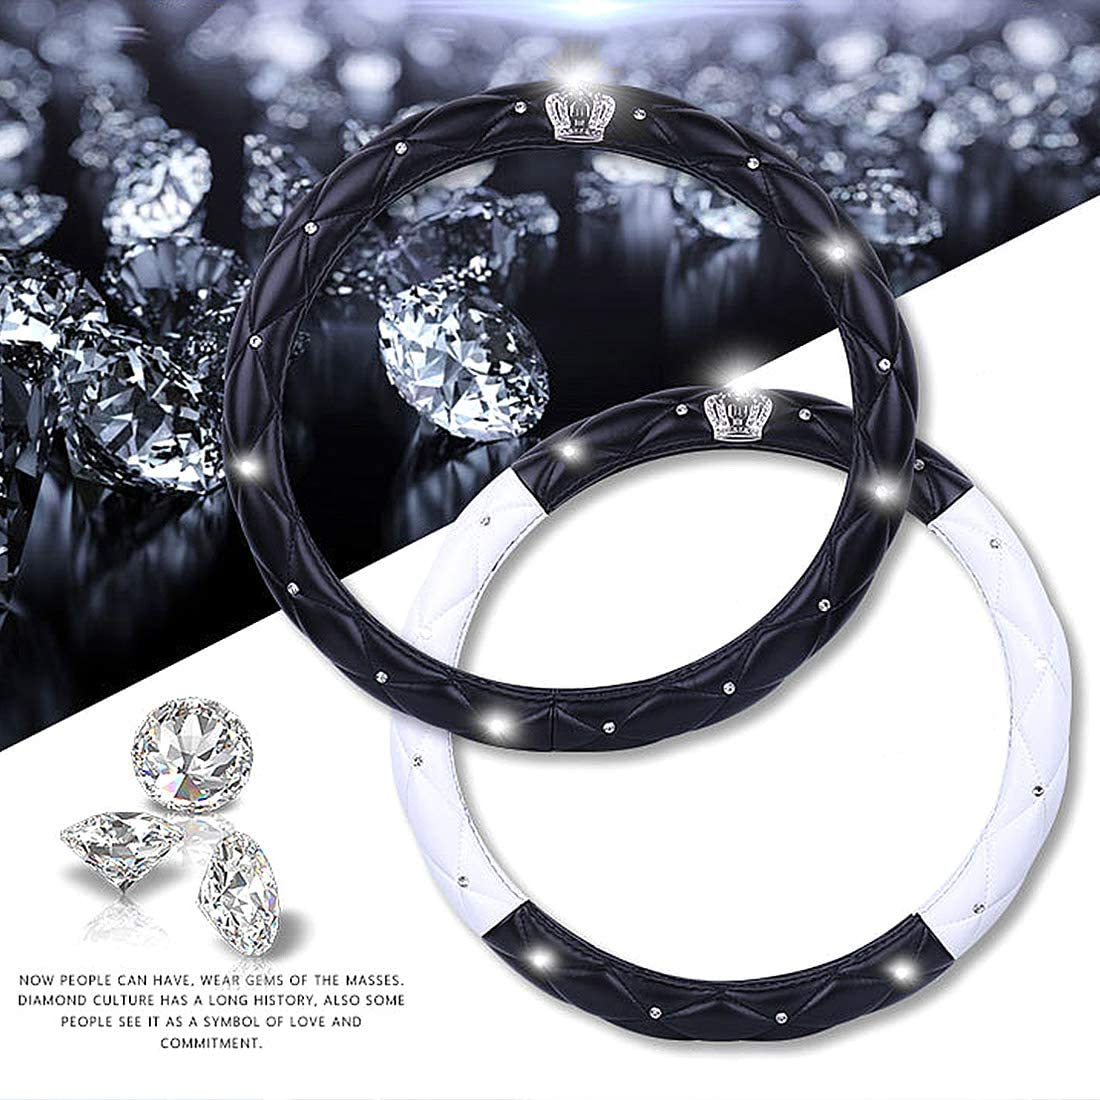 38cm A - Gold /& Black Queen ONLY Steering Wheel Cover with Noble Crown /& Bling Diamond /& Soft Leather Car Wheel Protector Elegant Series Universal 15